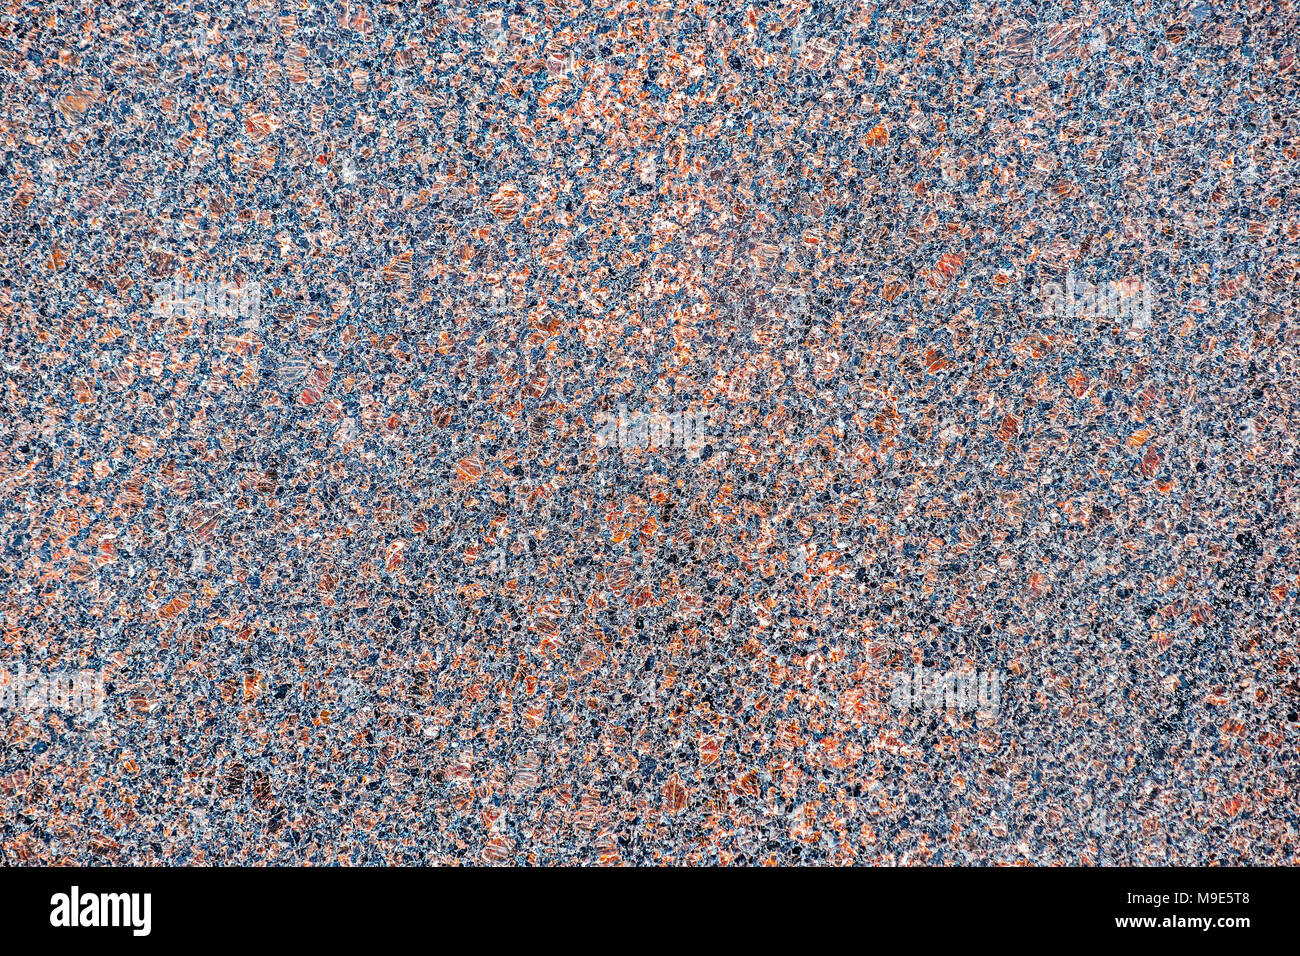 Intense color brown, bluish granite stone plate for decoration purposes - Stock Image